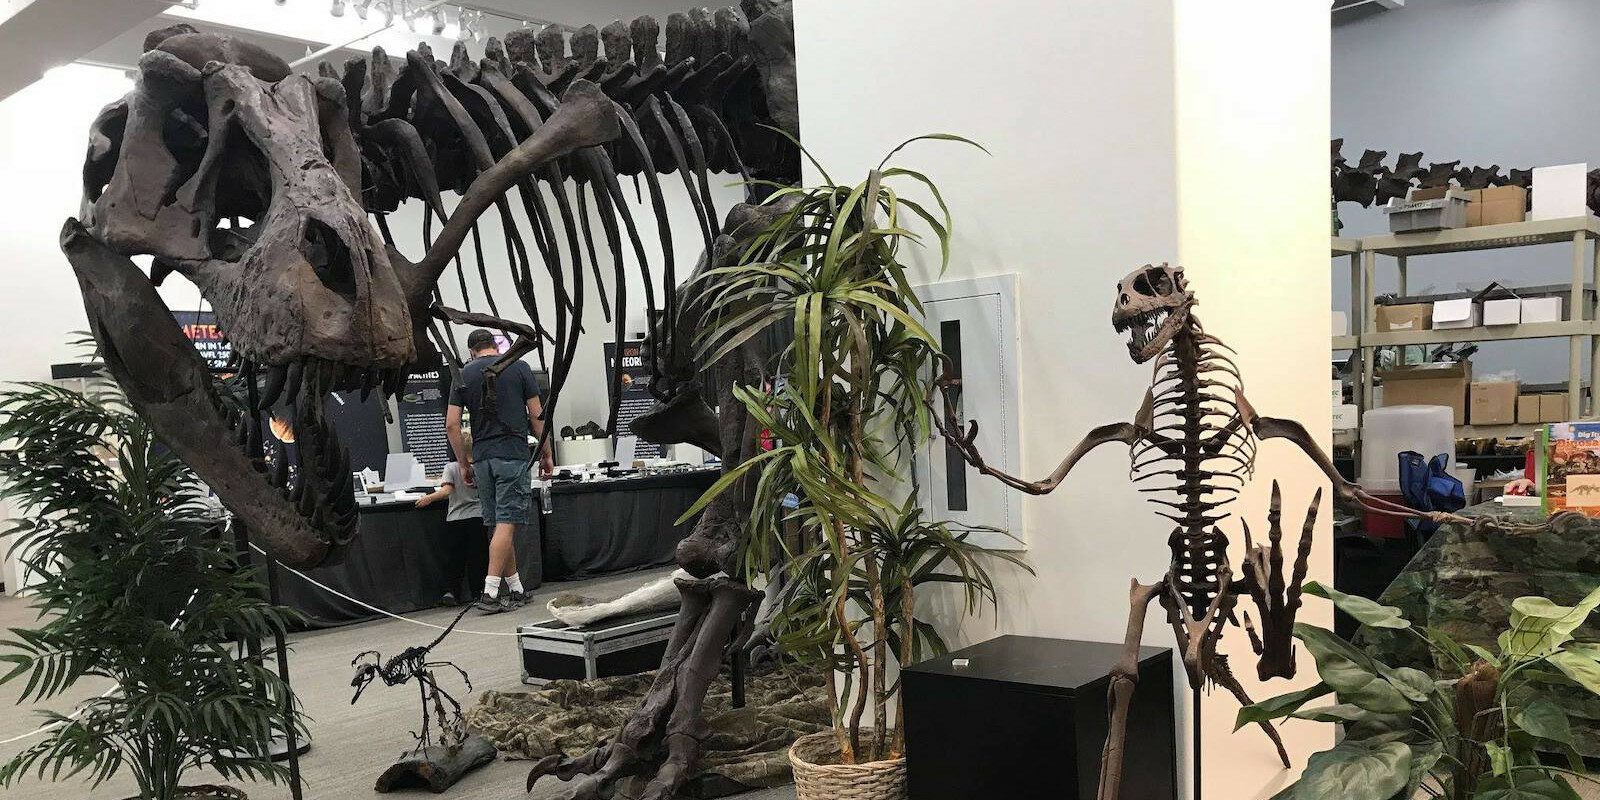 Image of a T-Rex at the Denver Mineral Show